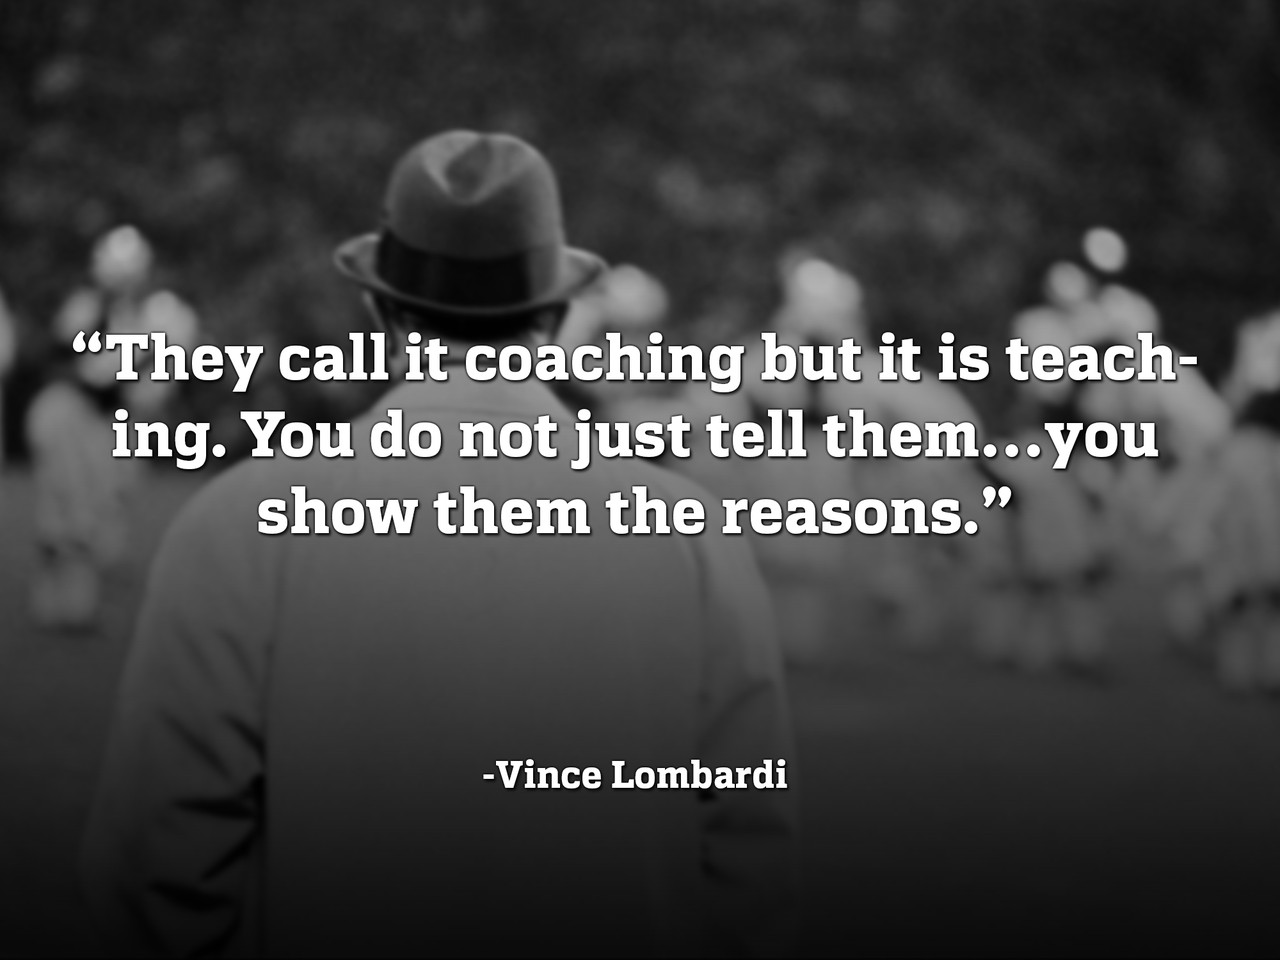 vince lombardi quotes 14